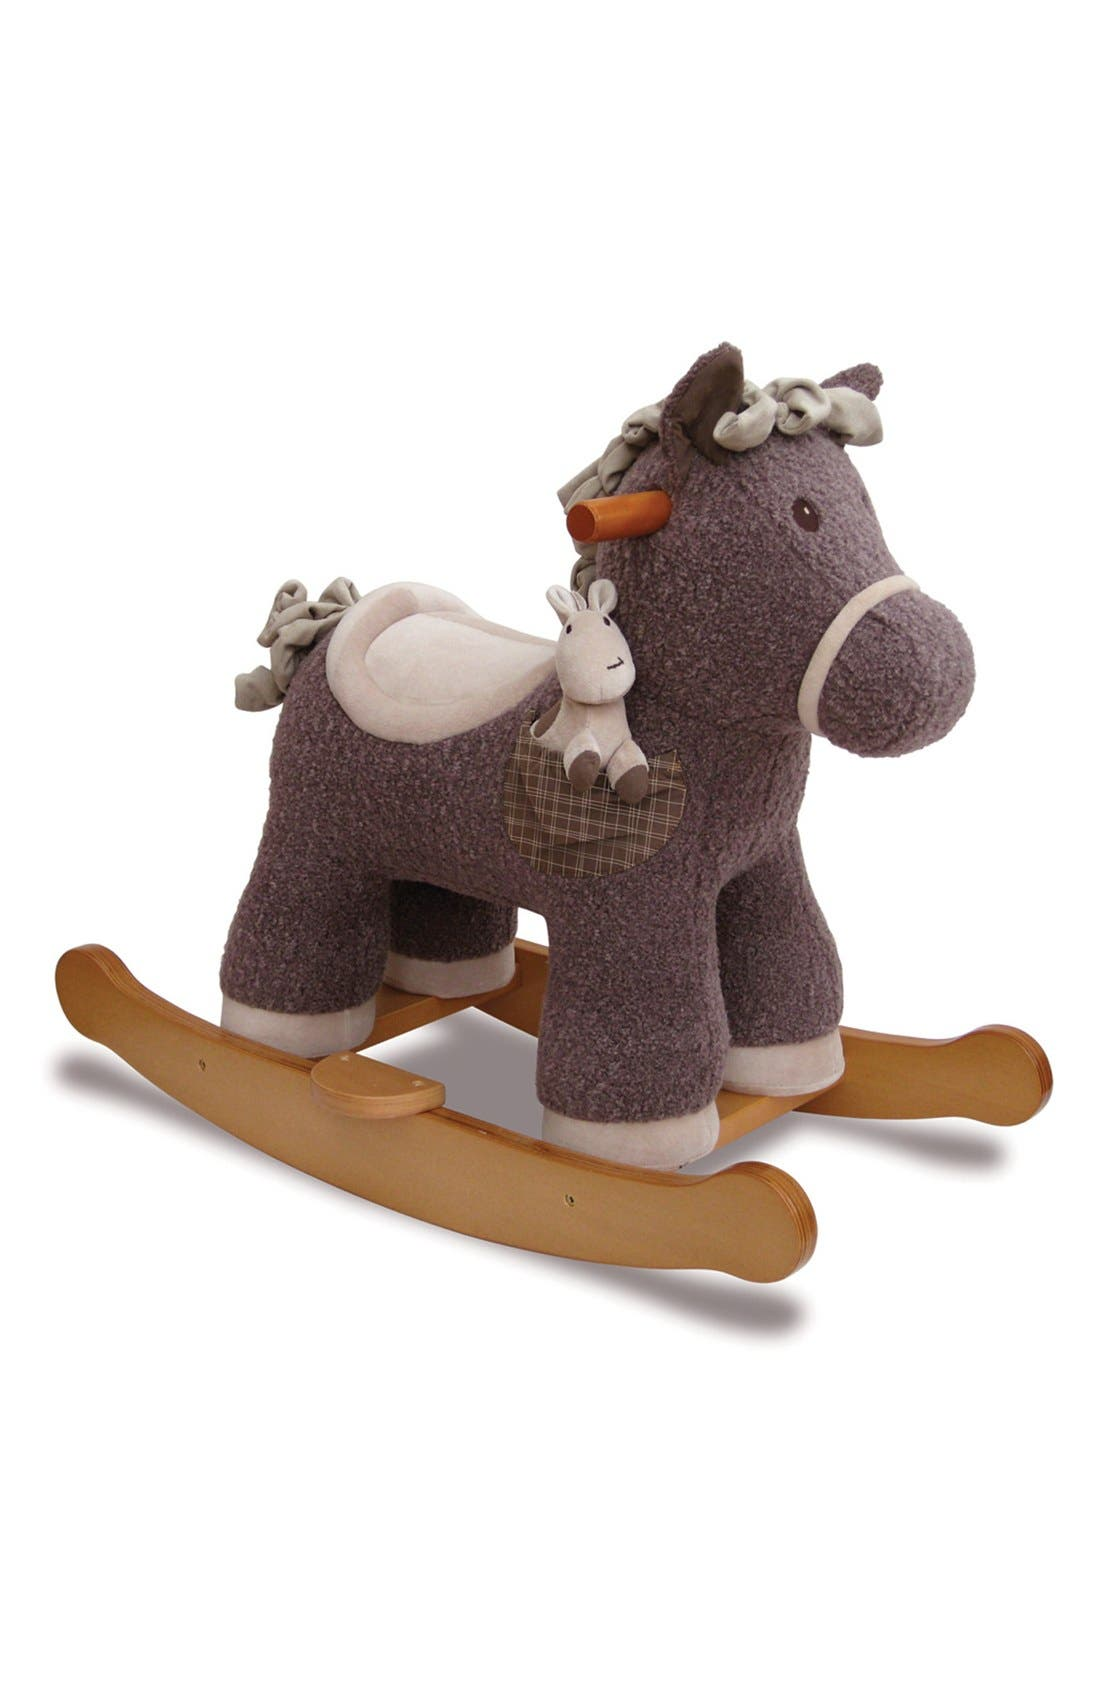 Rocking Horse & Stuffed Animal,                         Main,                         color, Brown